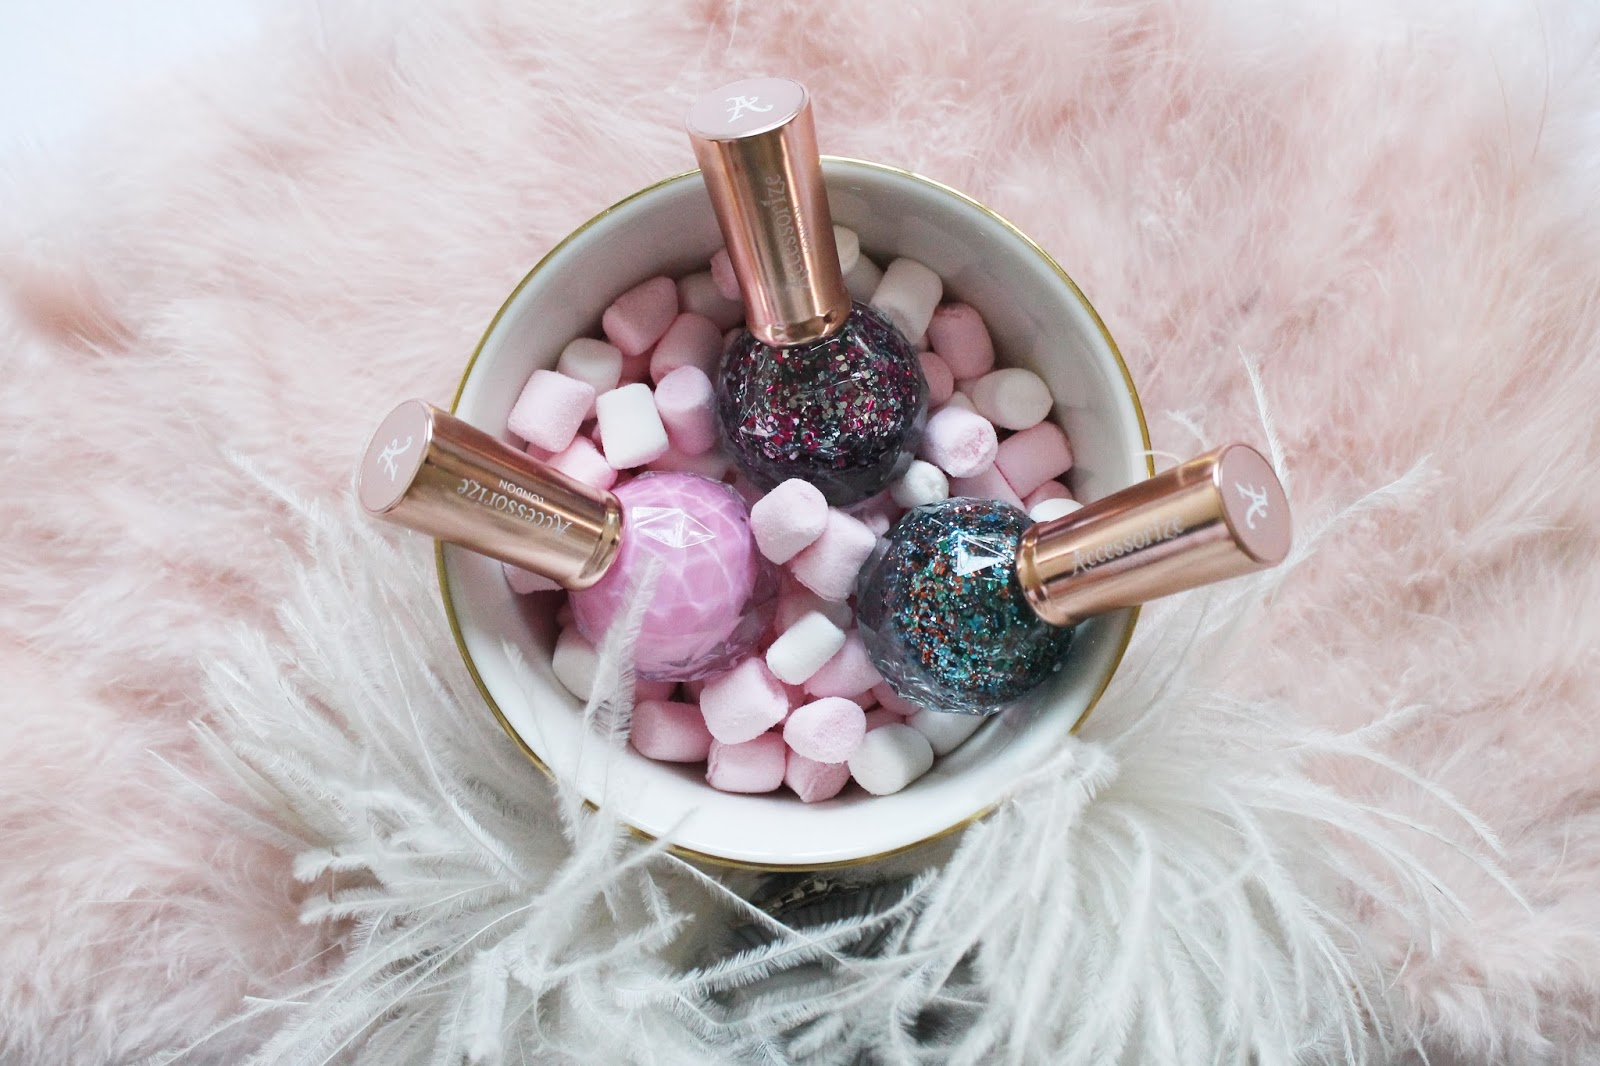 nail polish, nails, nailspiration, shimmer, silver, glitter, ethereal, magical , unicorn nails, marble, accessorize beauty, accessorize, marshmallows, feathers, girly, pretty, dreamy